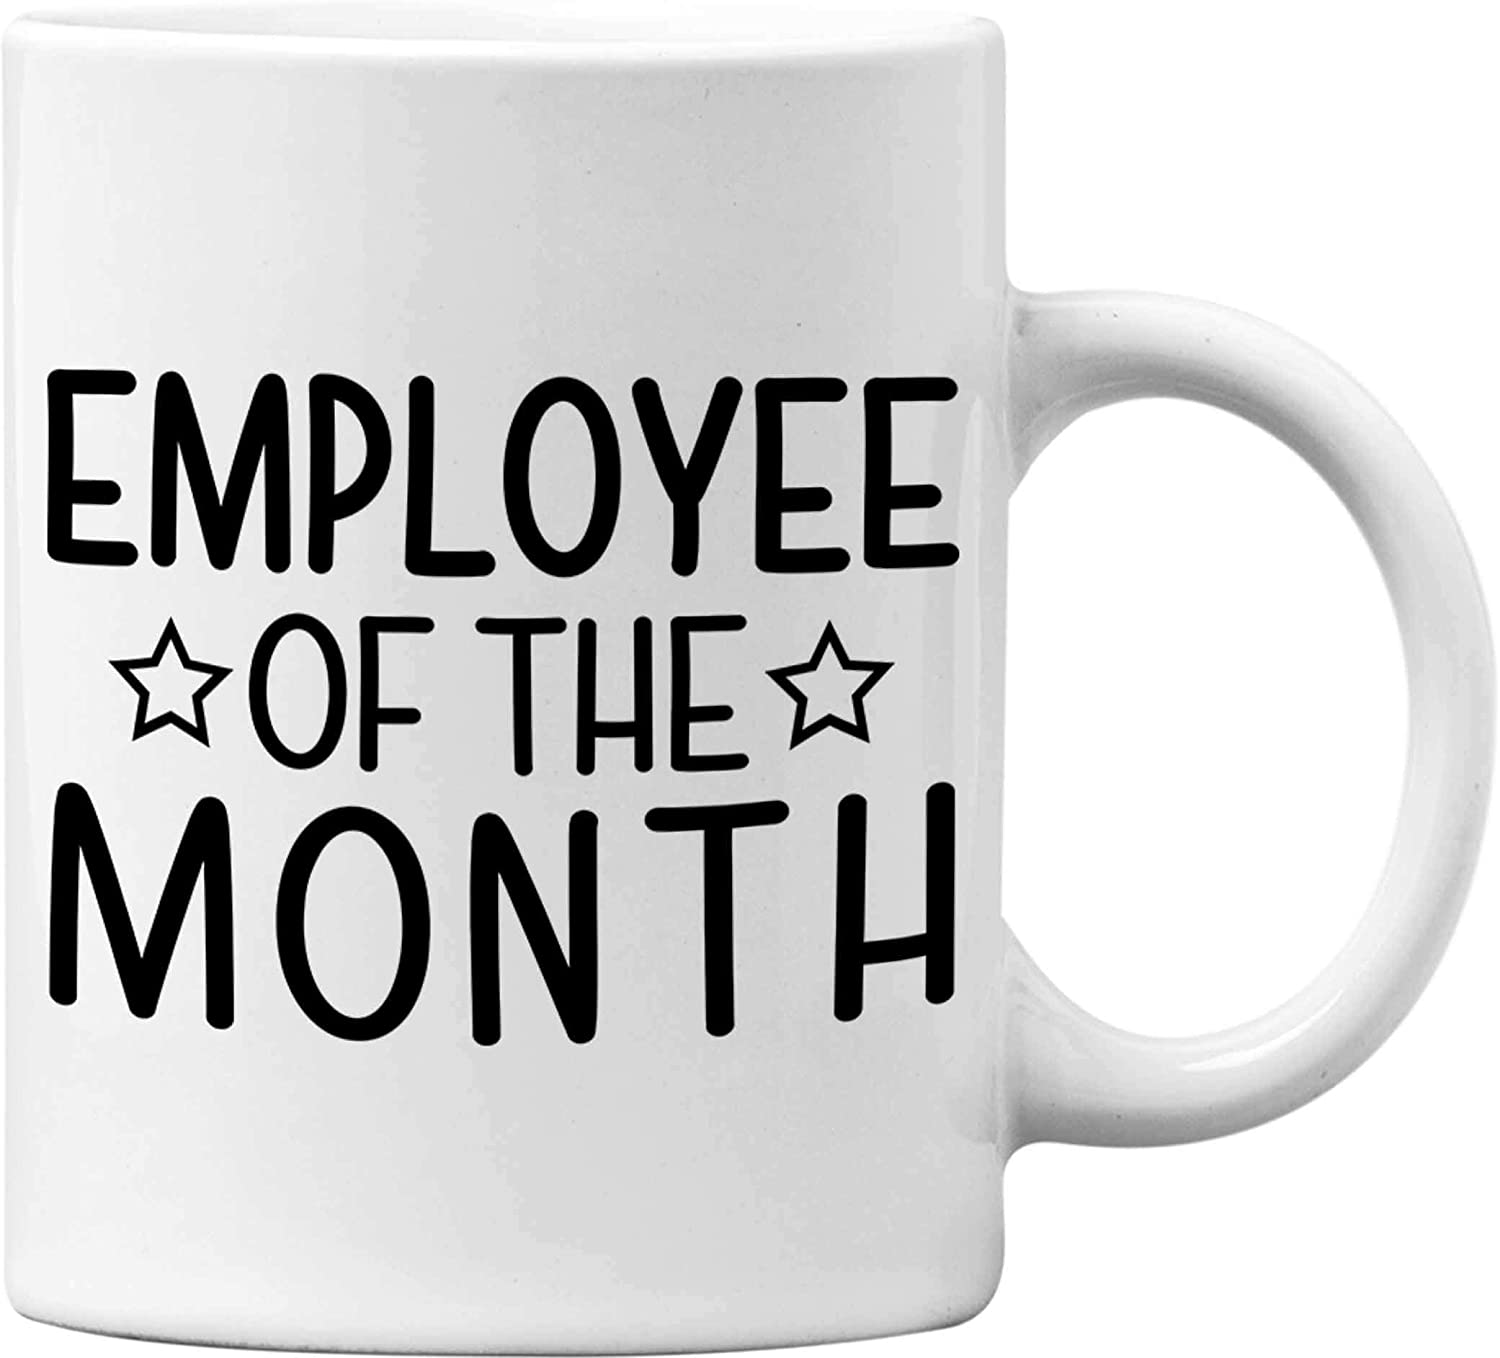 Employee Of The Month Funny White 11 Oz. Office Coffee Mug - Great Novelty Gift for Office Workers, Bosses, Co-Worker, Friends and Family by Mad Ink Fashions